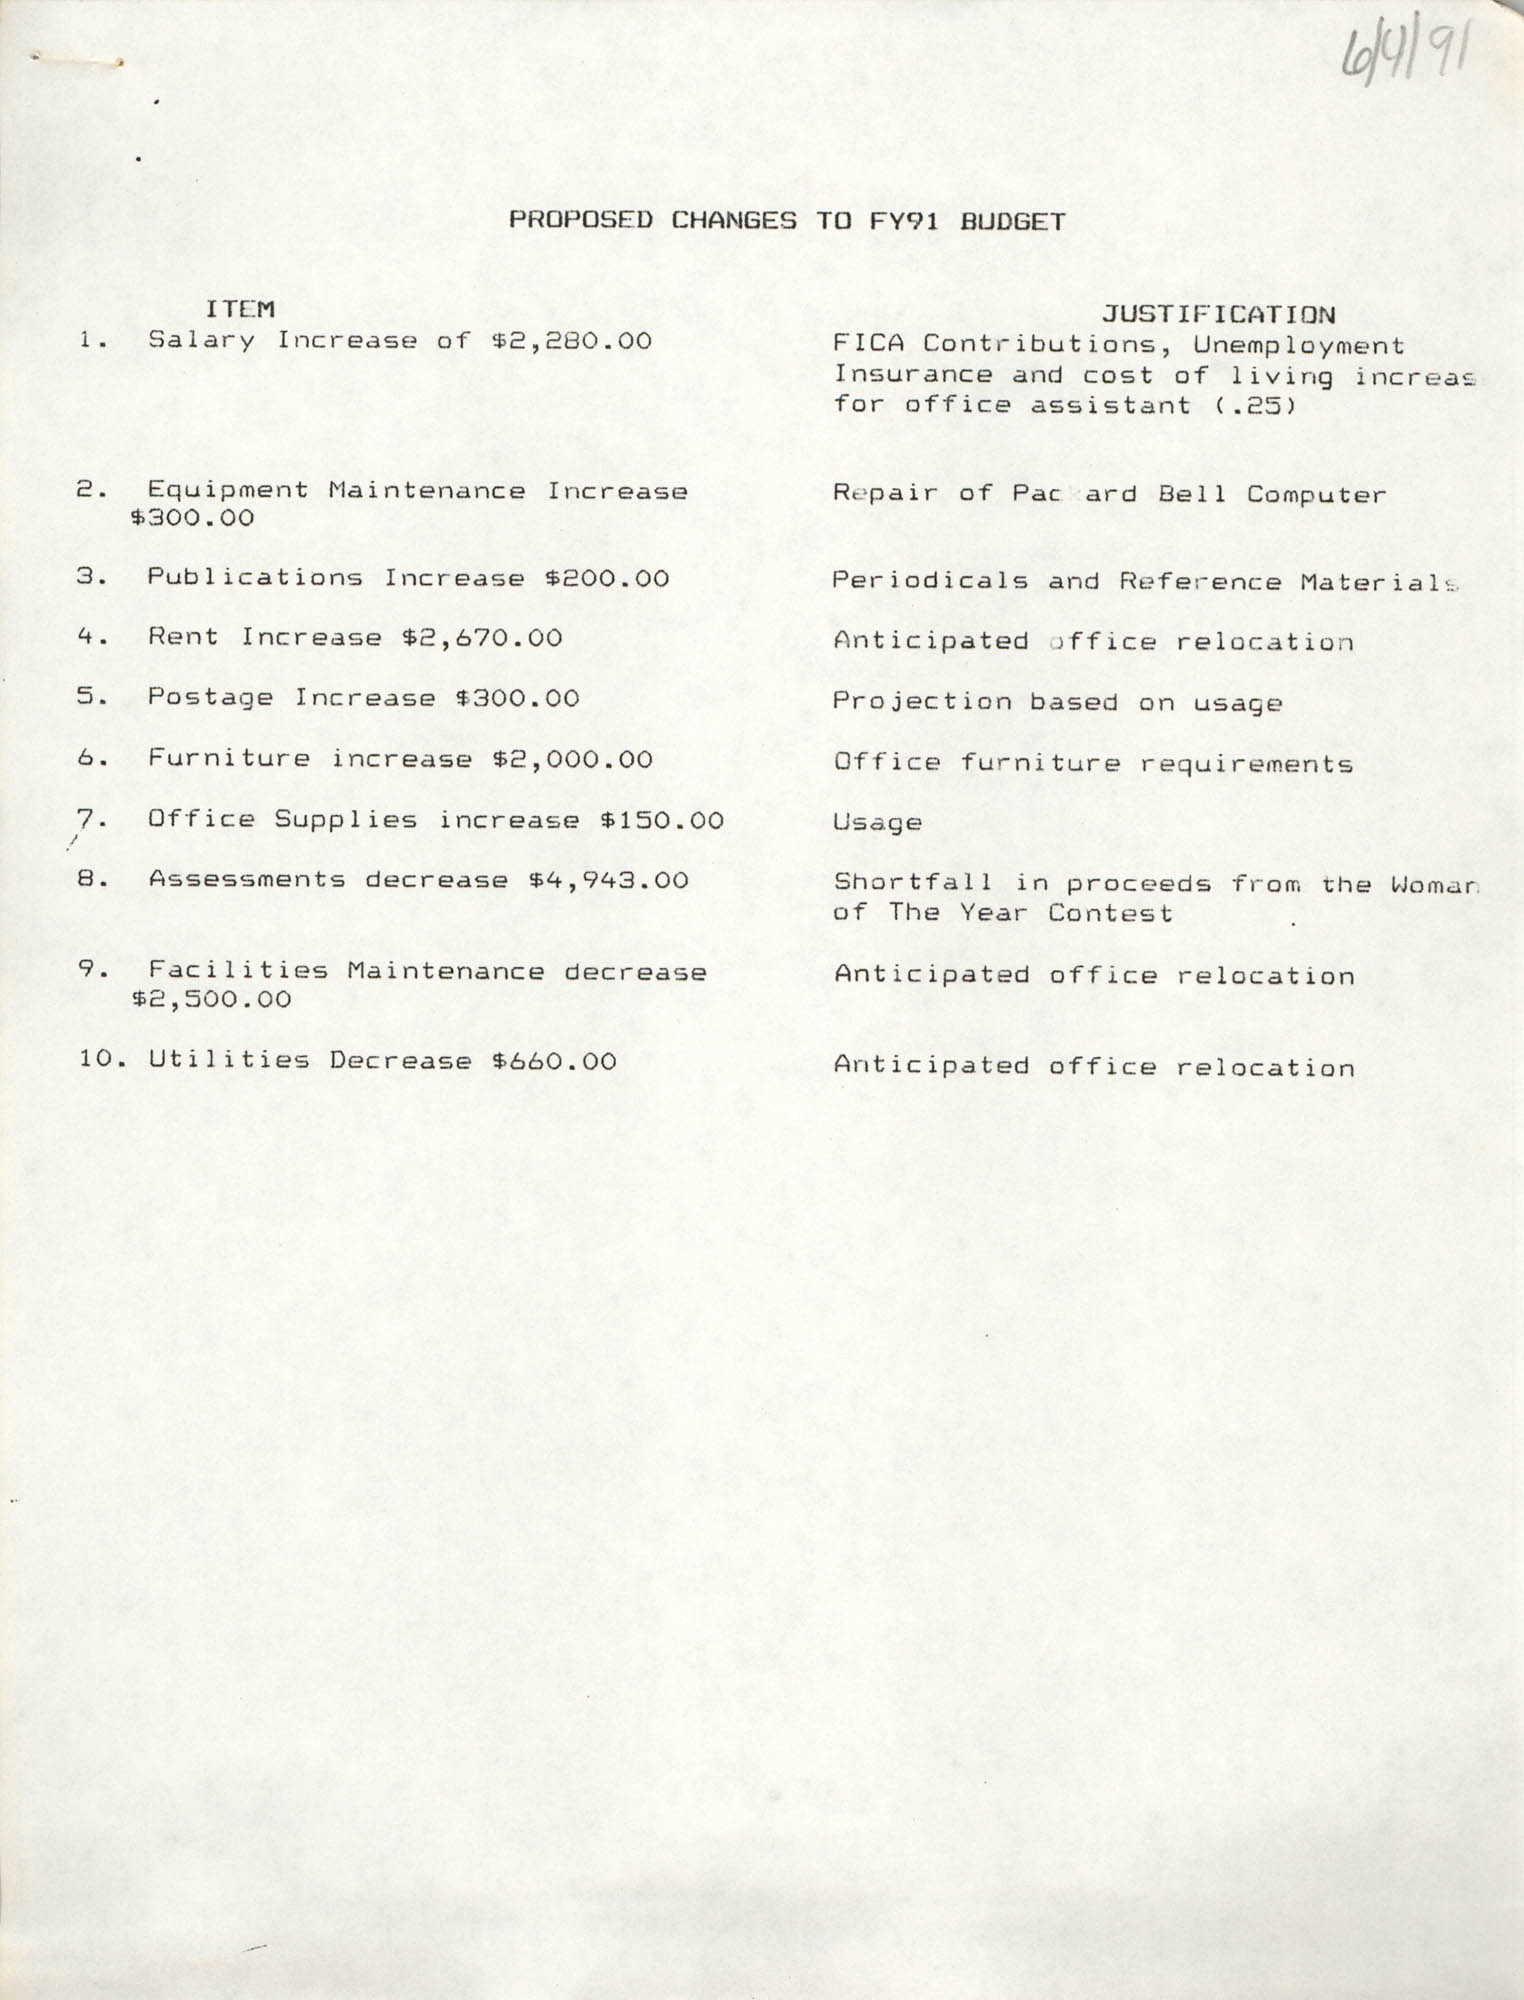 Charleston Branch of the NAACP Proposed Changes to the Fiscal Year Budget, 1991